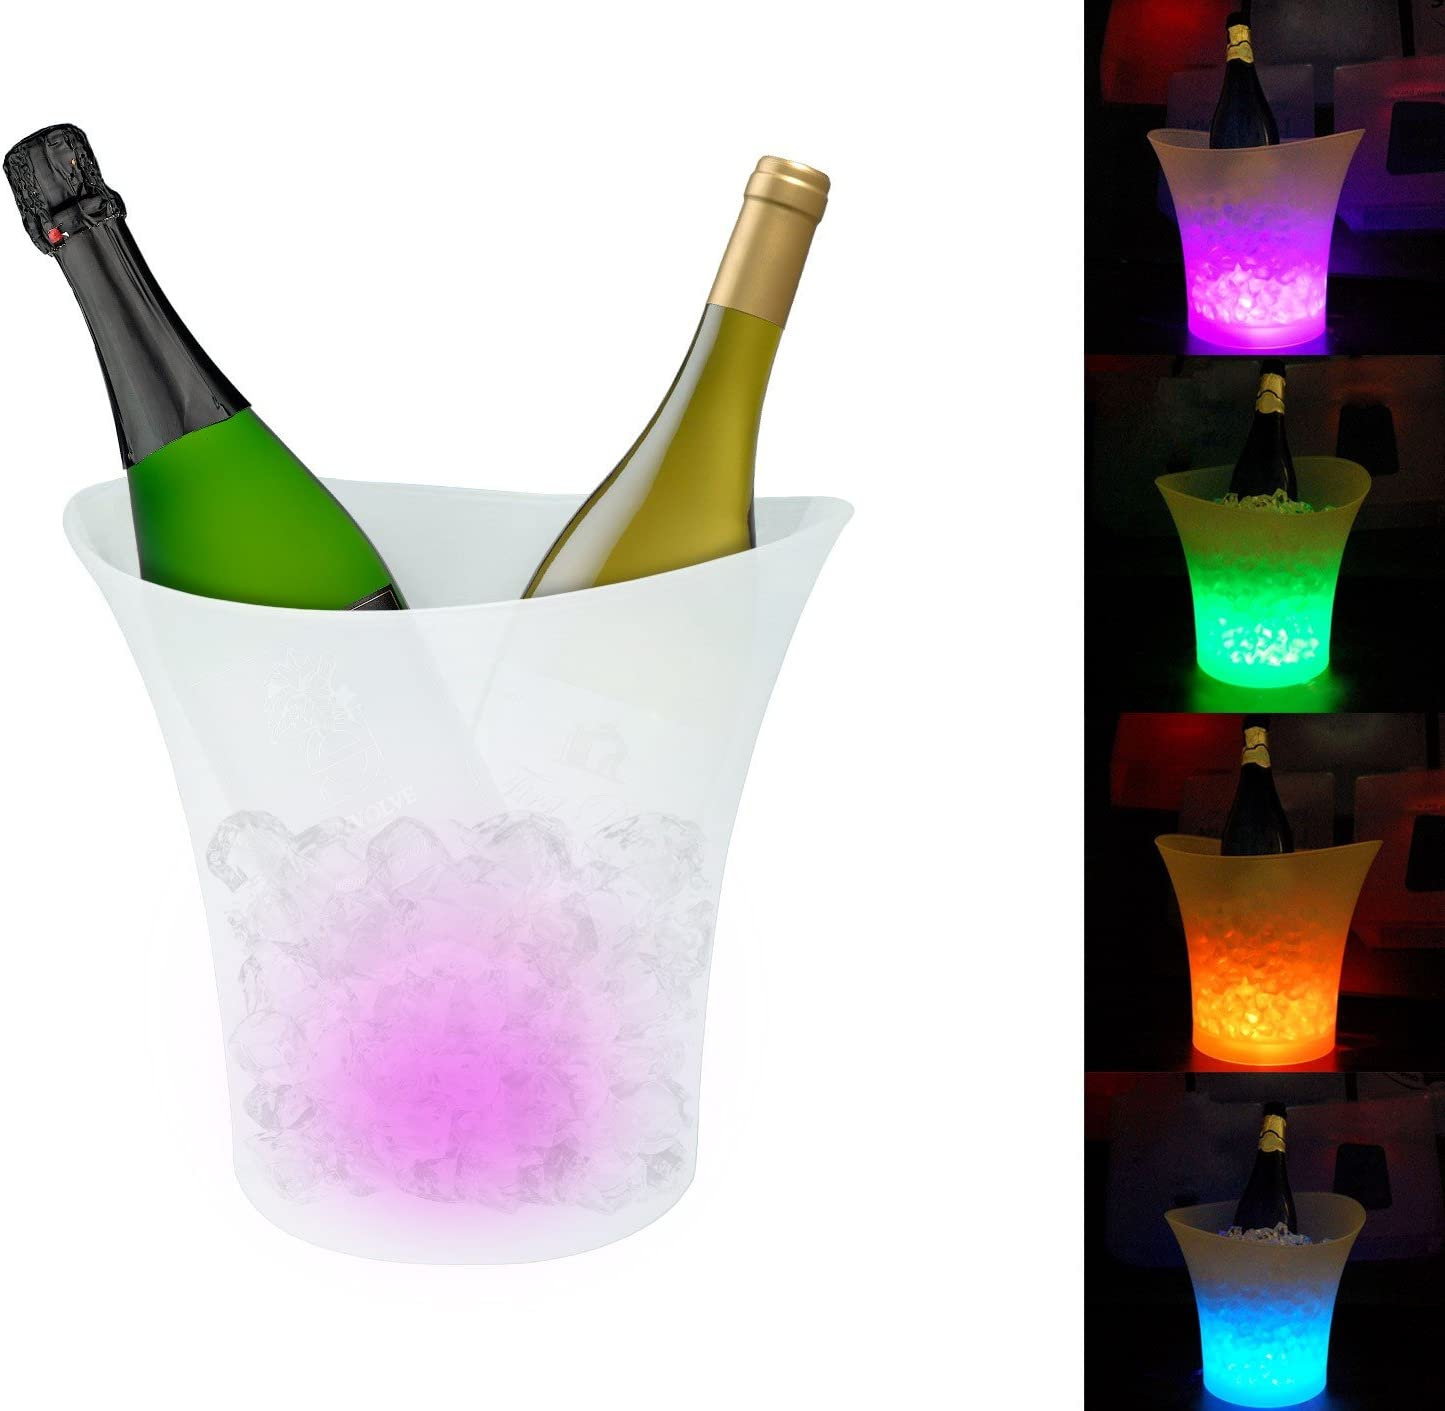 Cubitera LED cambio de color automático - Accesorio ideal para fiestas y eventos